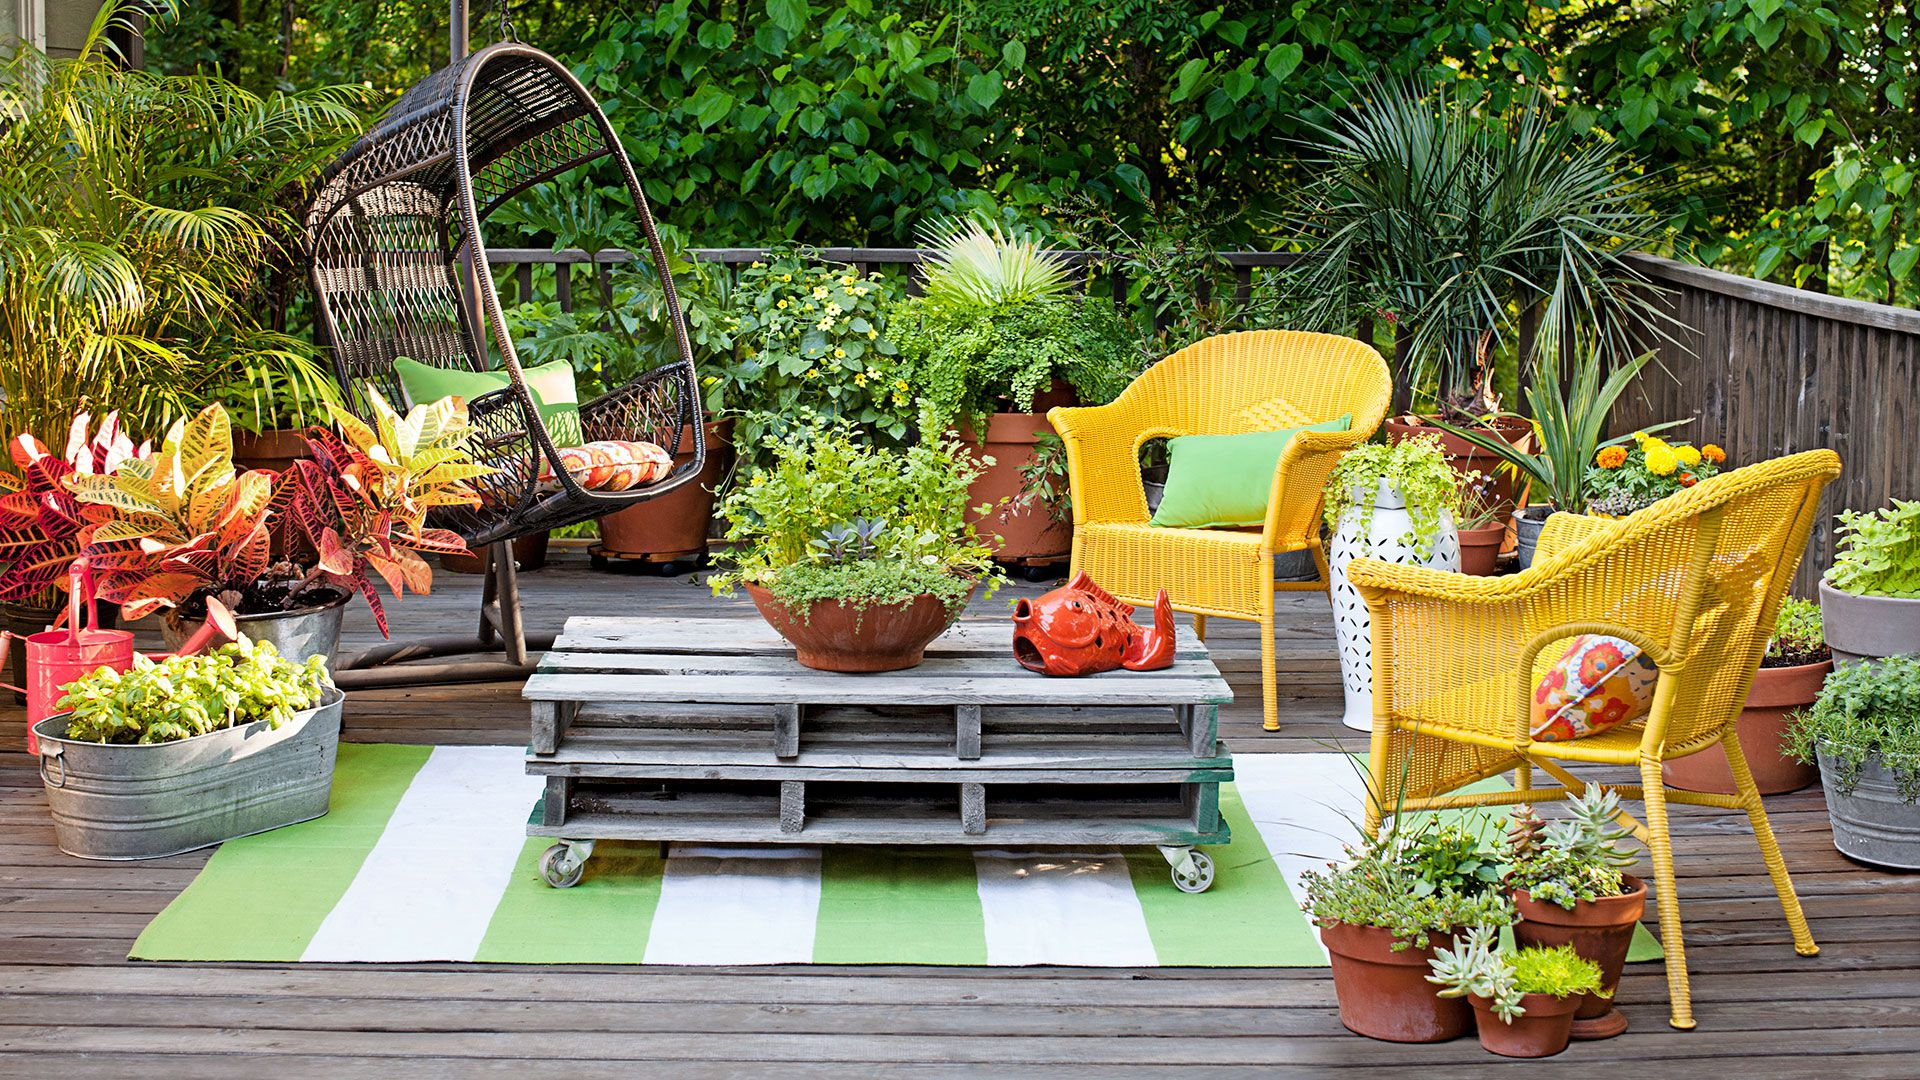 28 Backyard Decorating Ideas Easy Gardening Tips And Diy Projects regarding 11 Some of the Coolest Ways How to Makeover Decorating Backyard